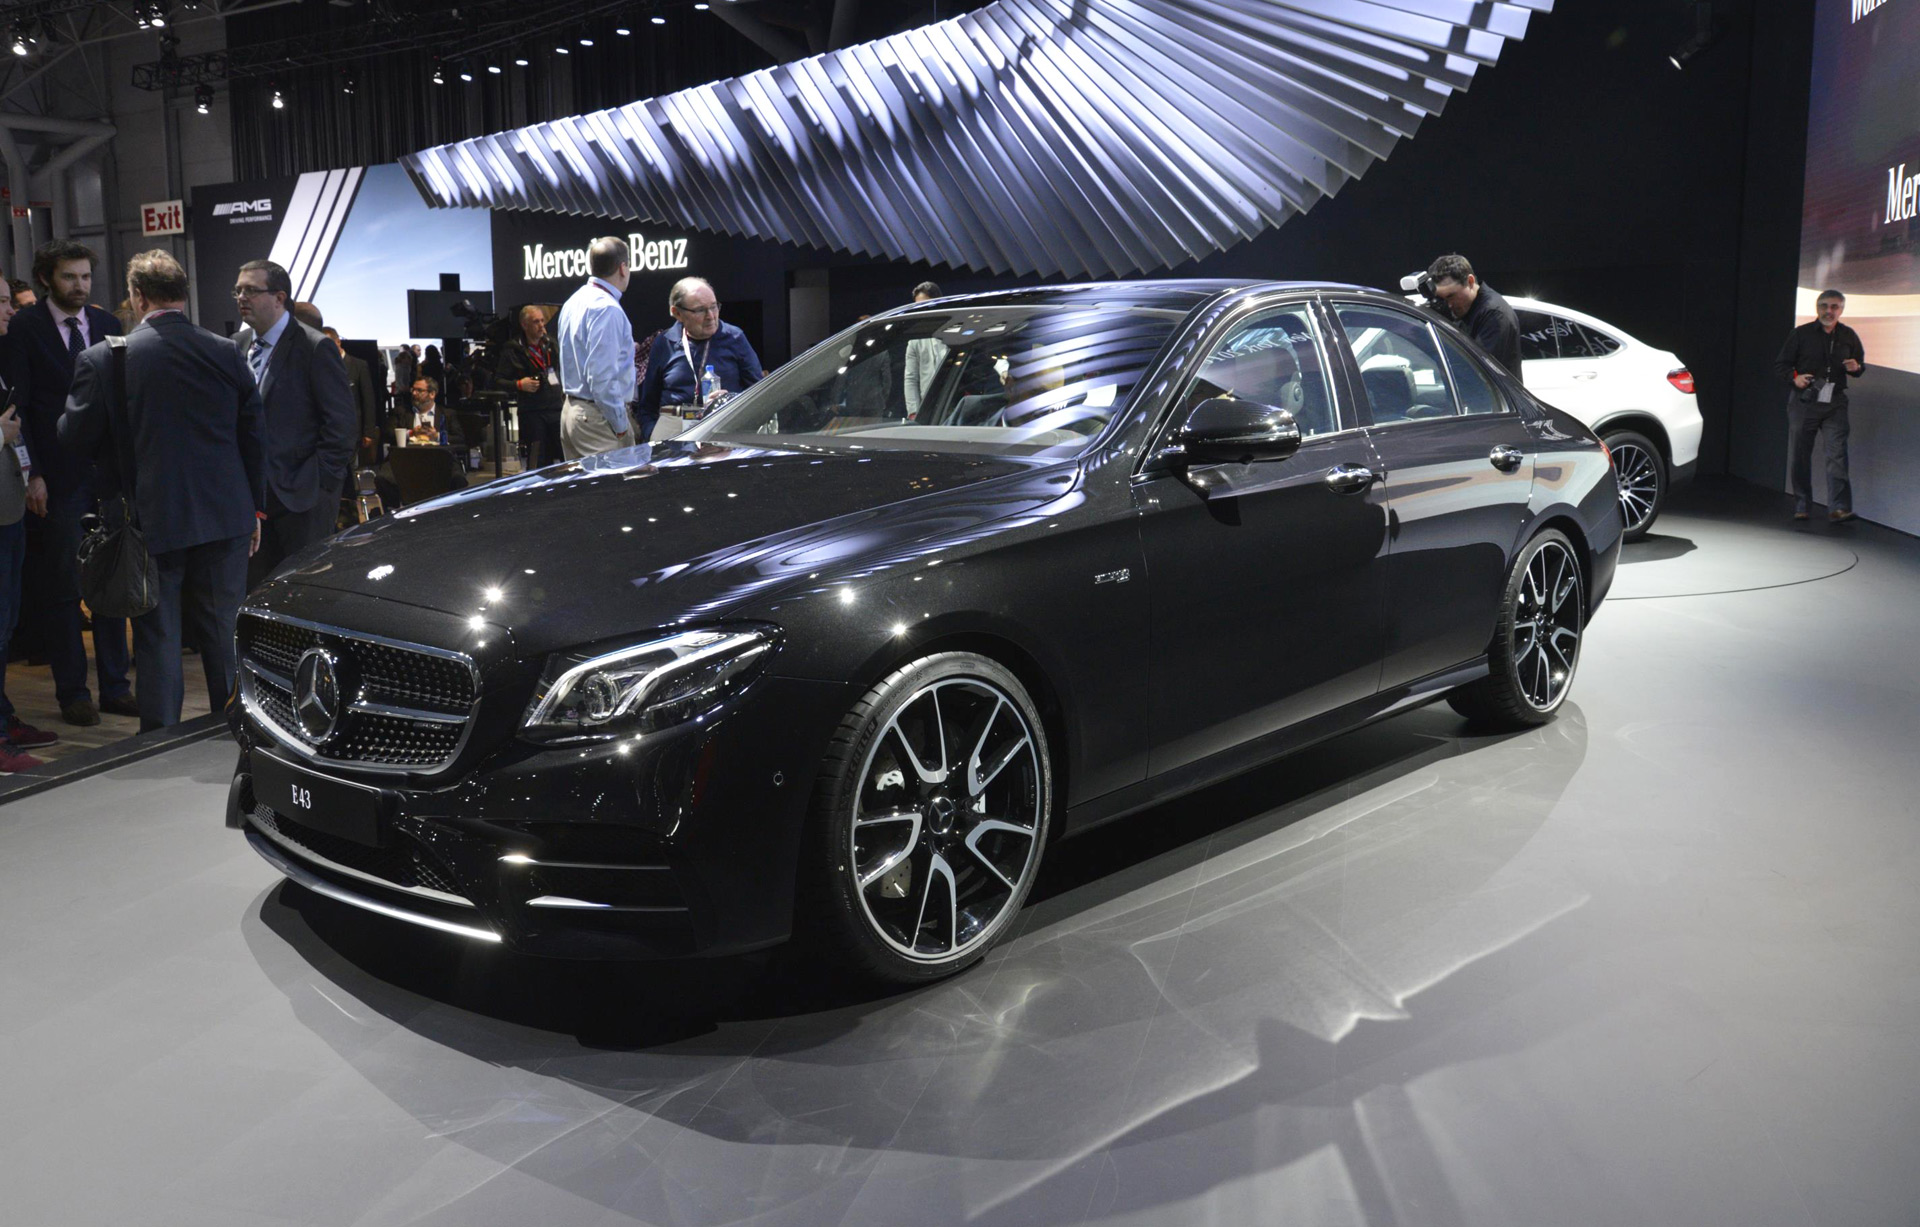 2017 Mercedes Amg E43 Revealed At New York Auto Show Live Photos And Video